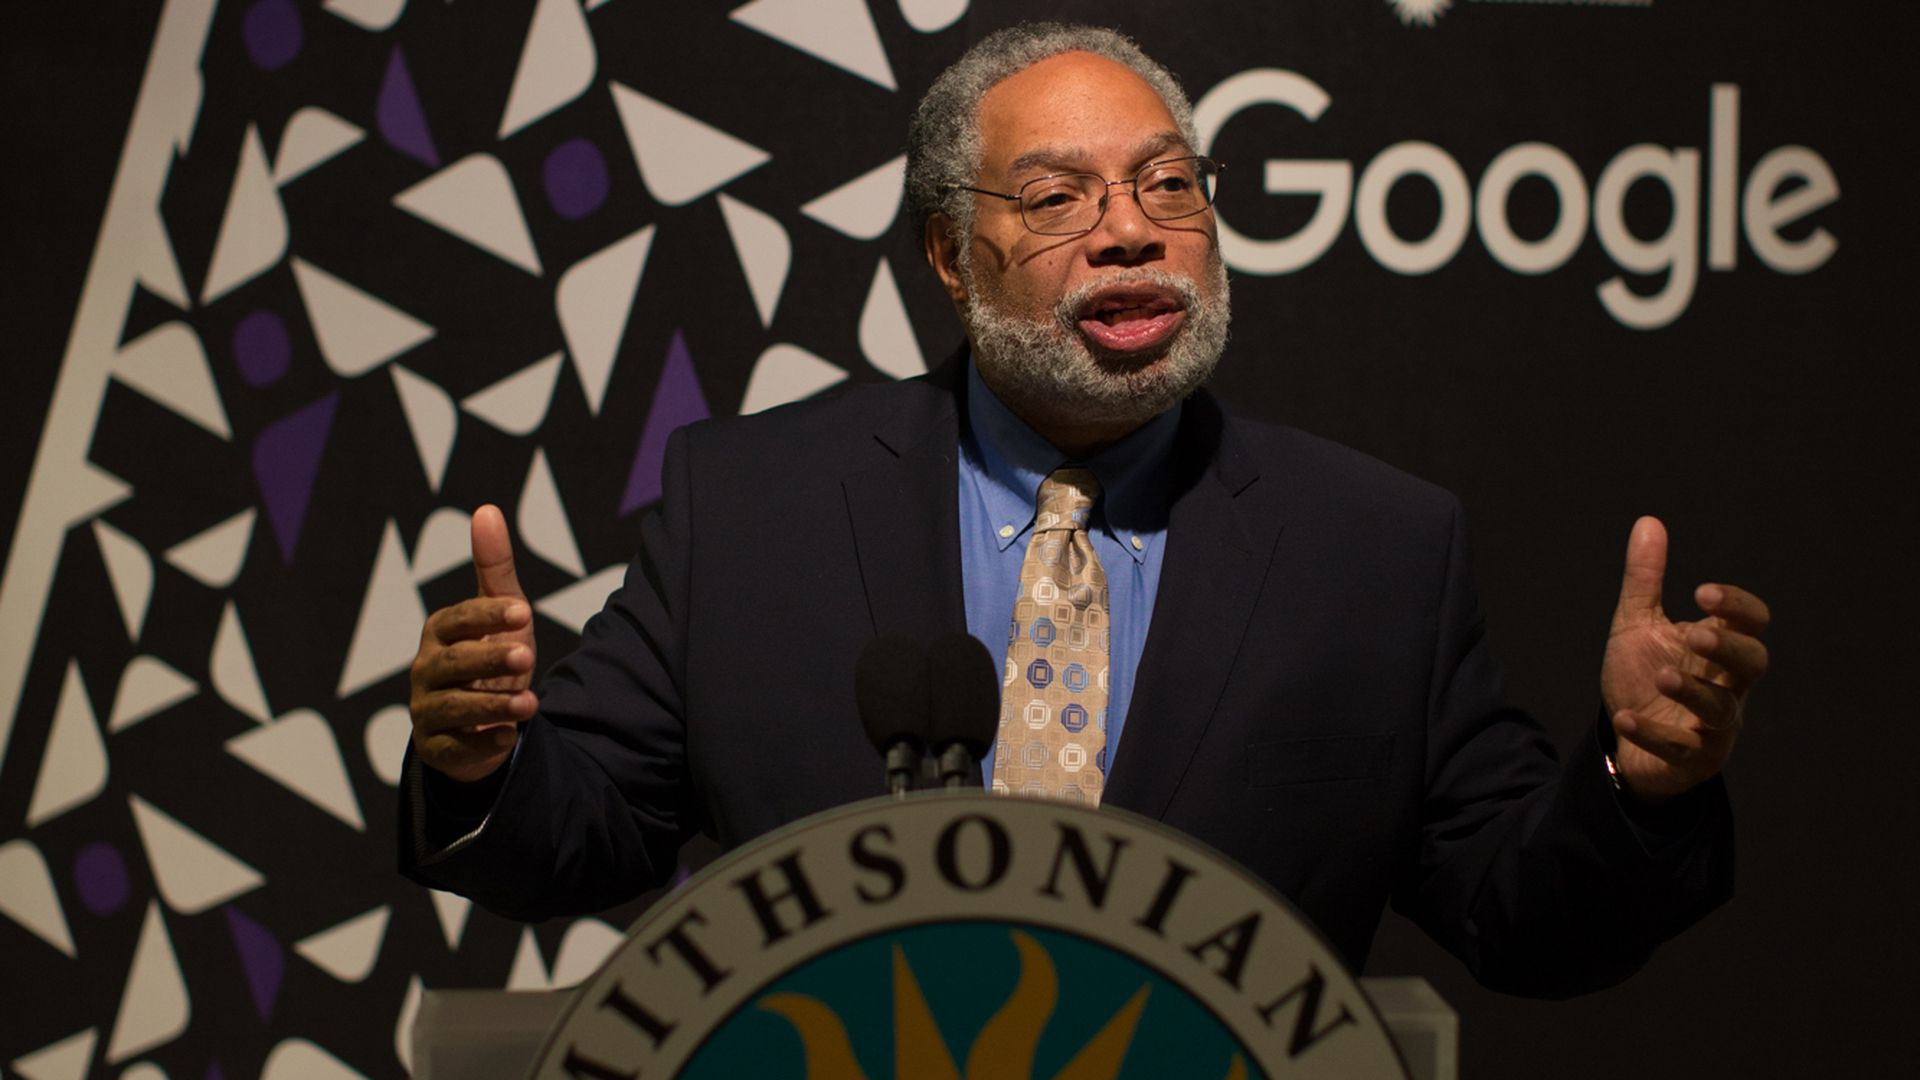 Lonny Bunch, founding director of the Smithsonian's National Museum of African American History and Culture, speaking at a podium